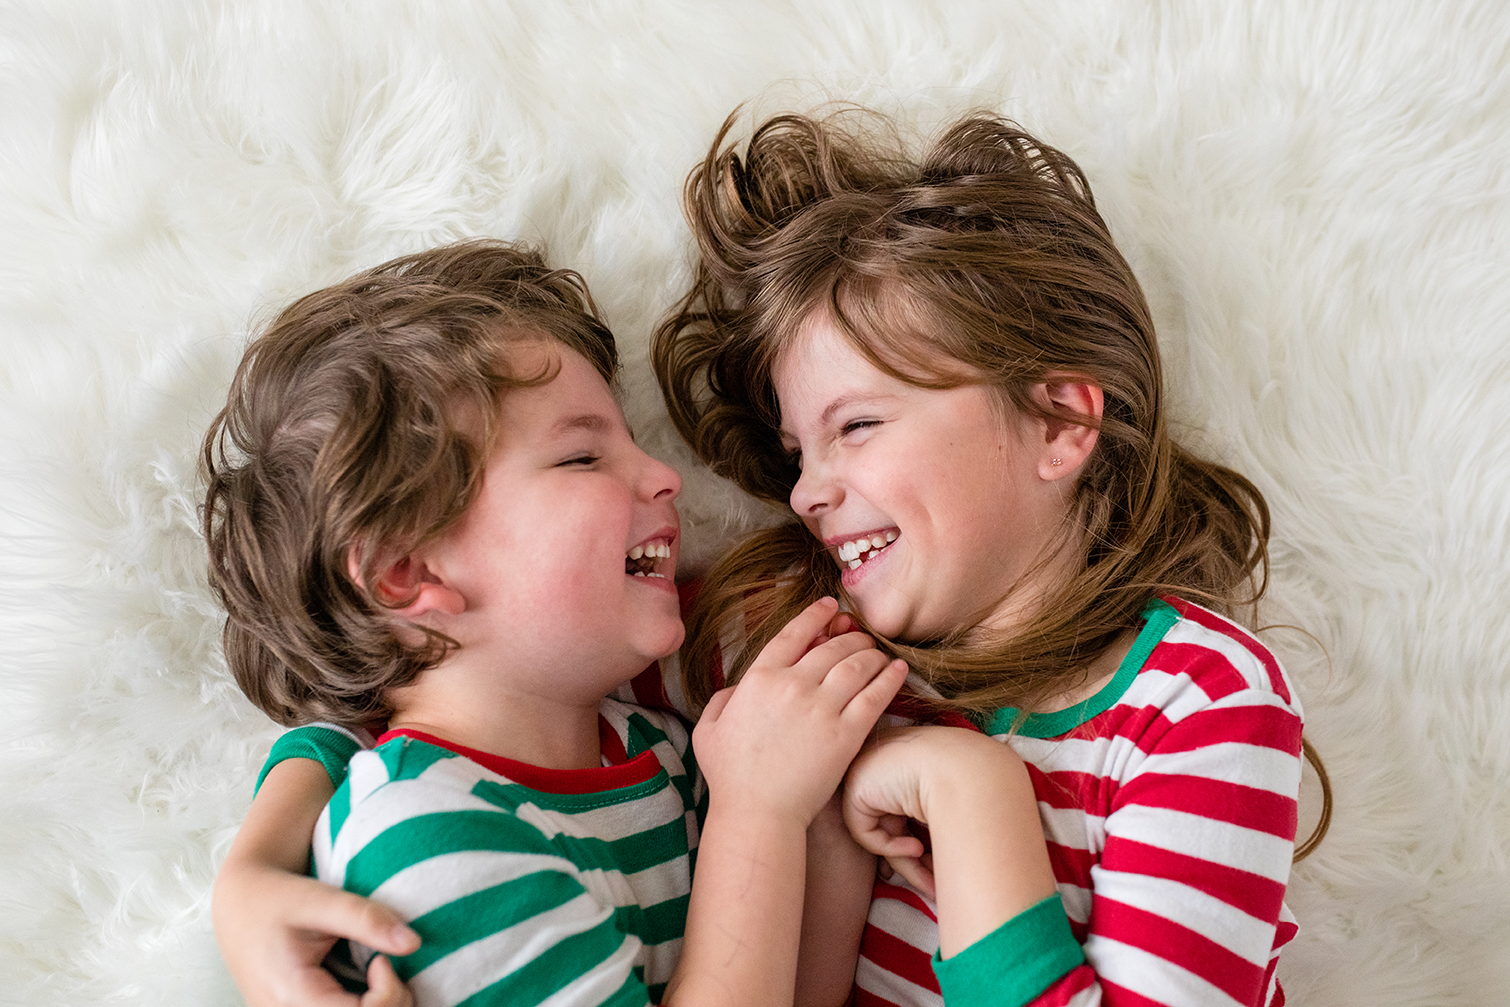 Siblings laughing and smiling at each other - Debbie Dee Photography - Aberdeen Photographer